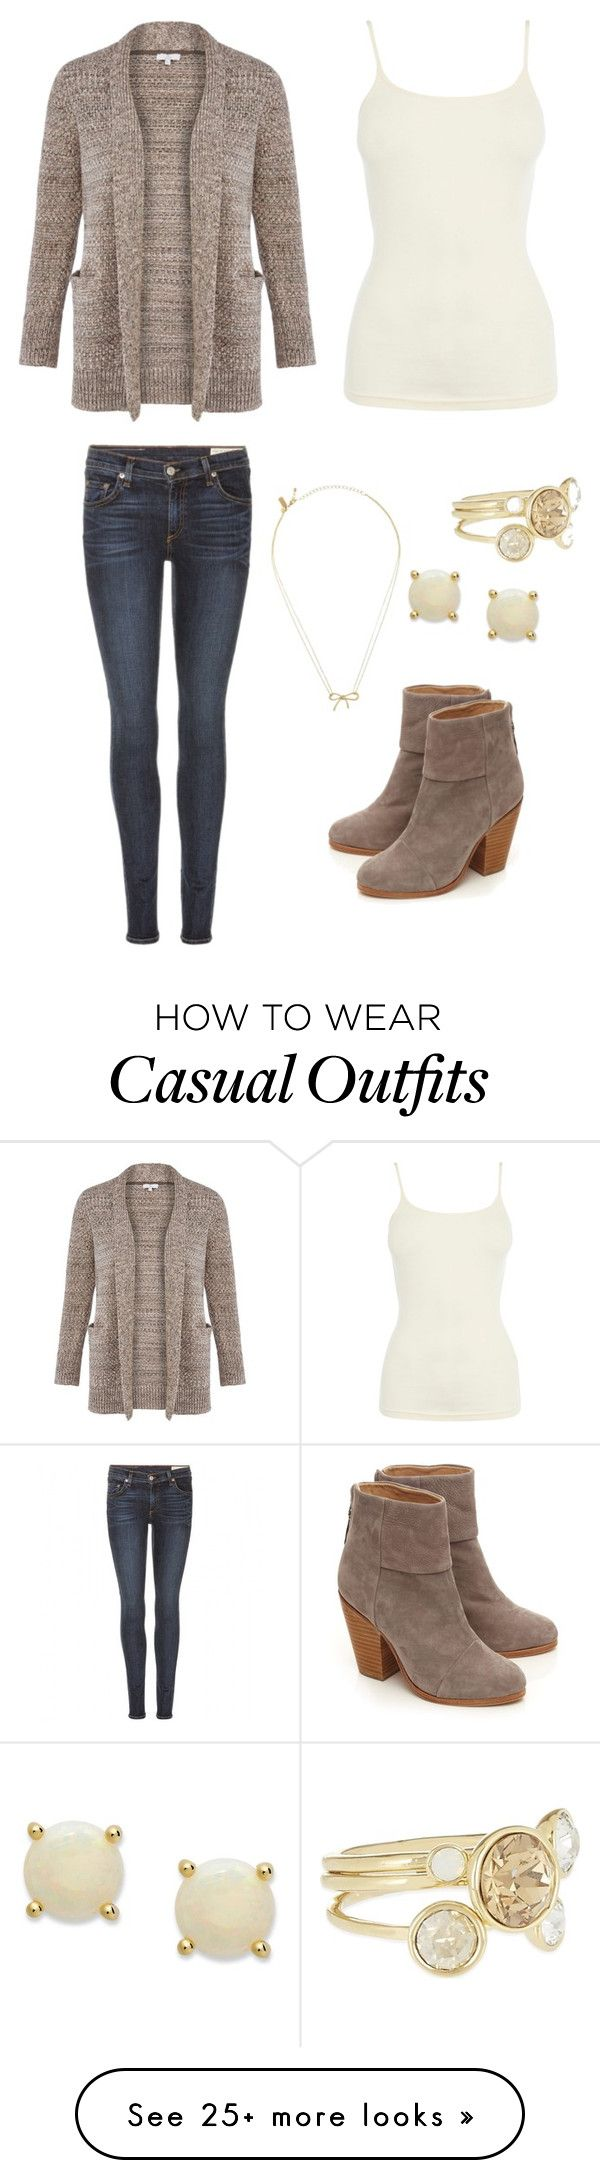 """Brown sweater - Casual"" by brittjade on Polyvore featuring rag & bone, Warehouse, CC, Ted Baker, Victoria Townsend and Kate Spade"